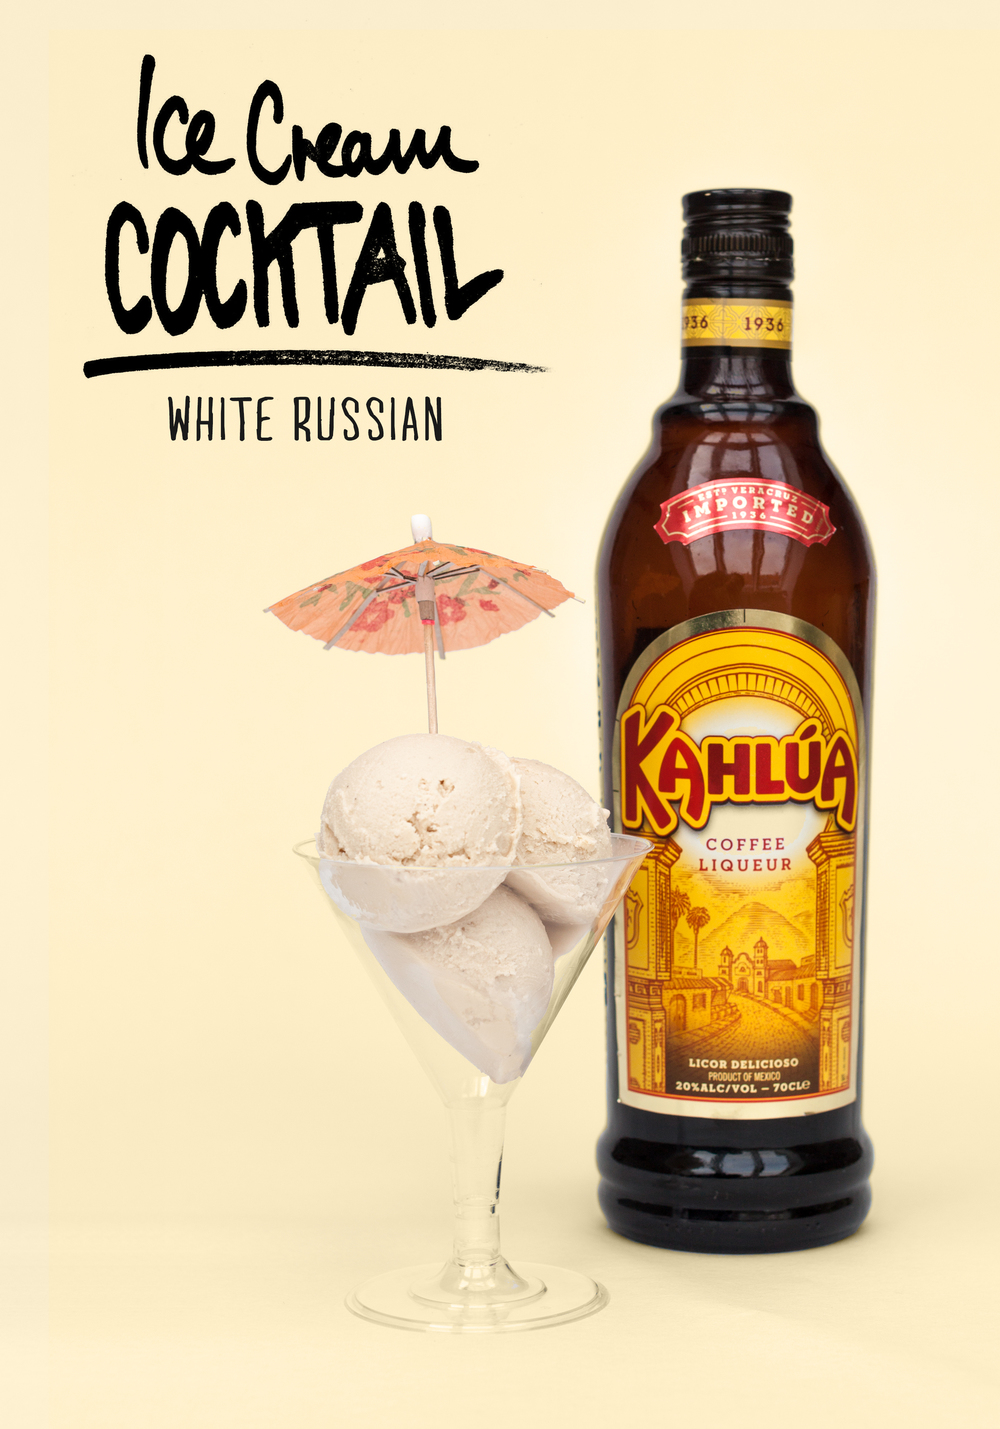 Cocktail_kahlua.jpg